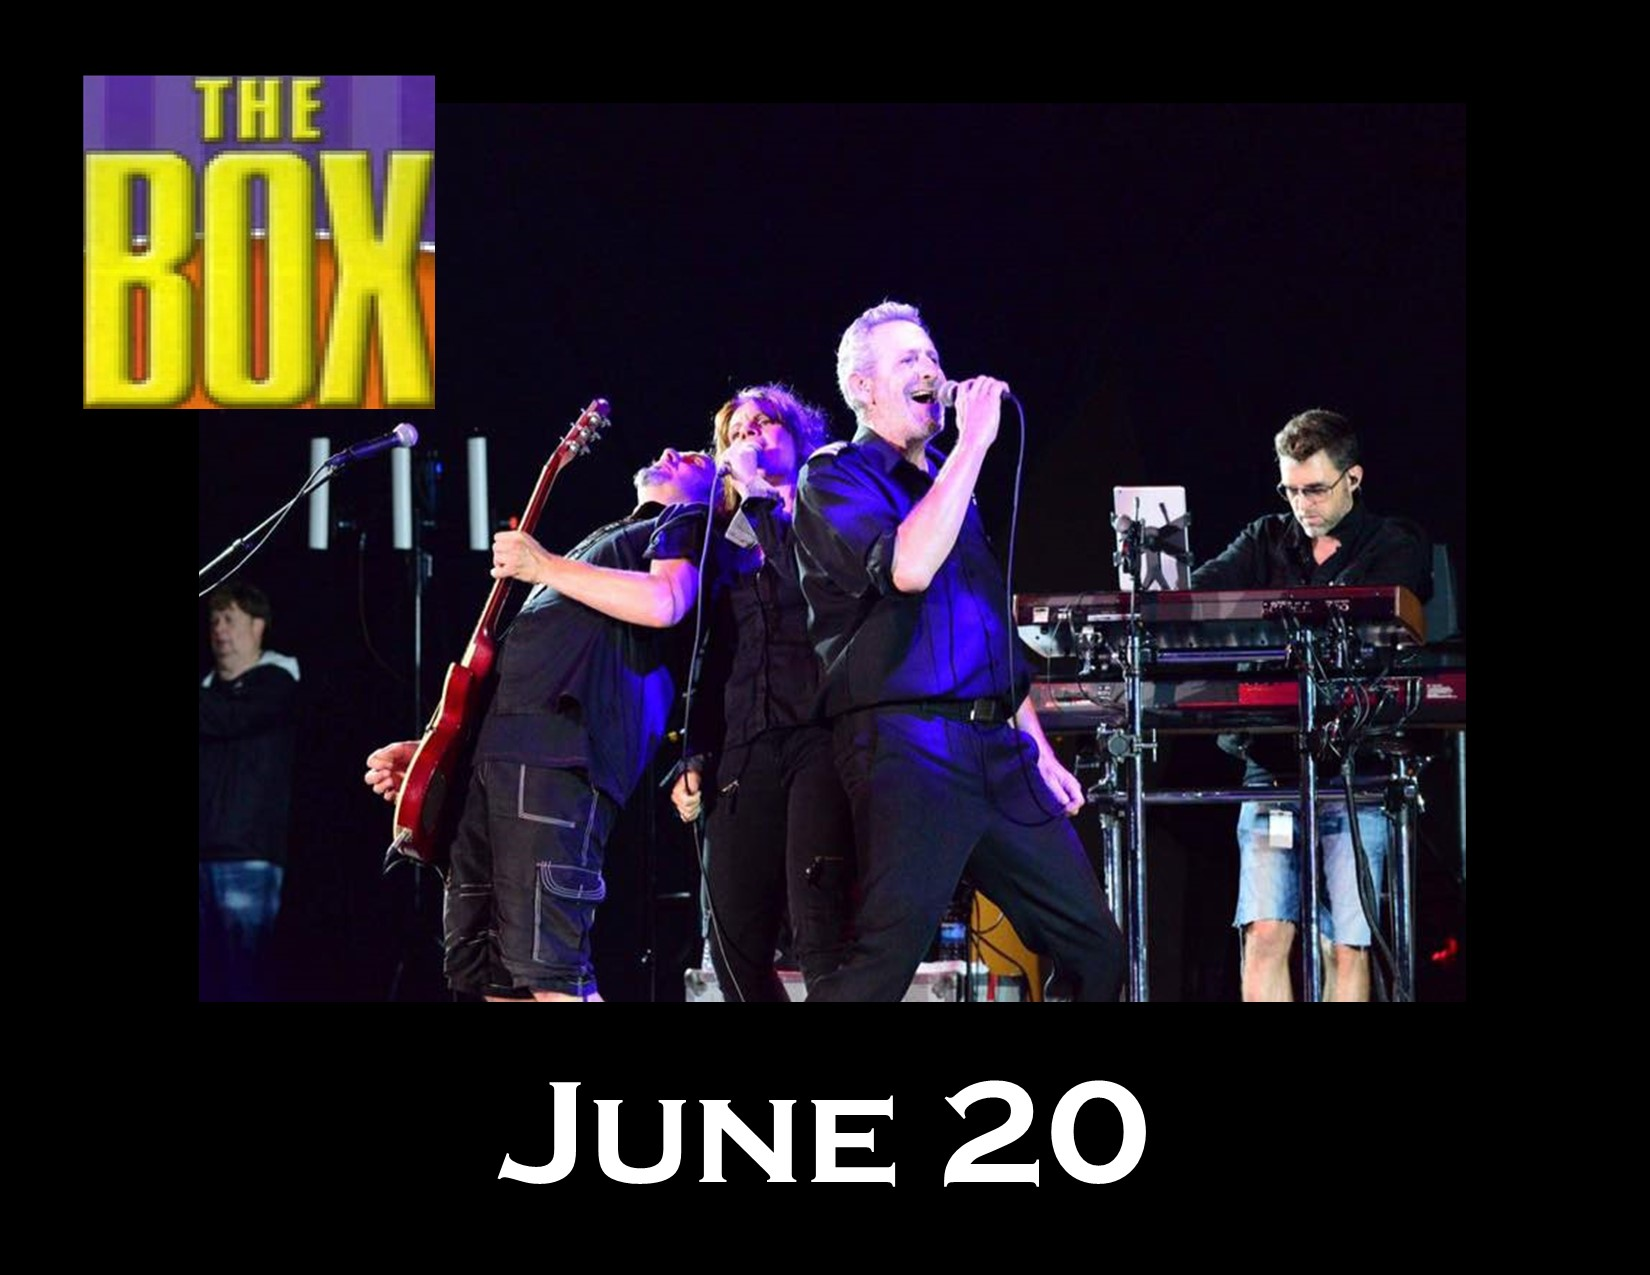 The Box - Canada's Closer Together Tour 2020